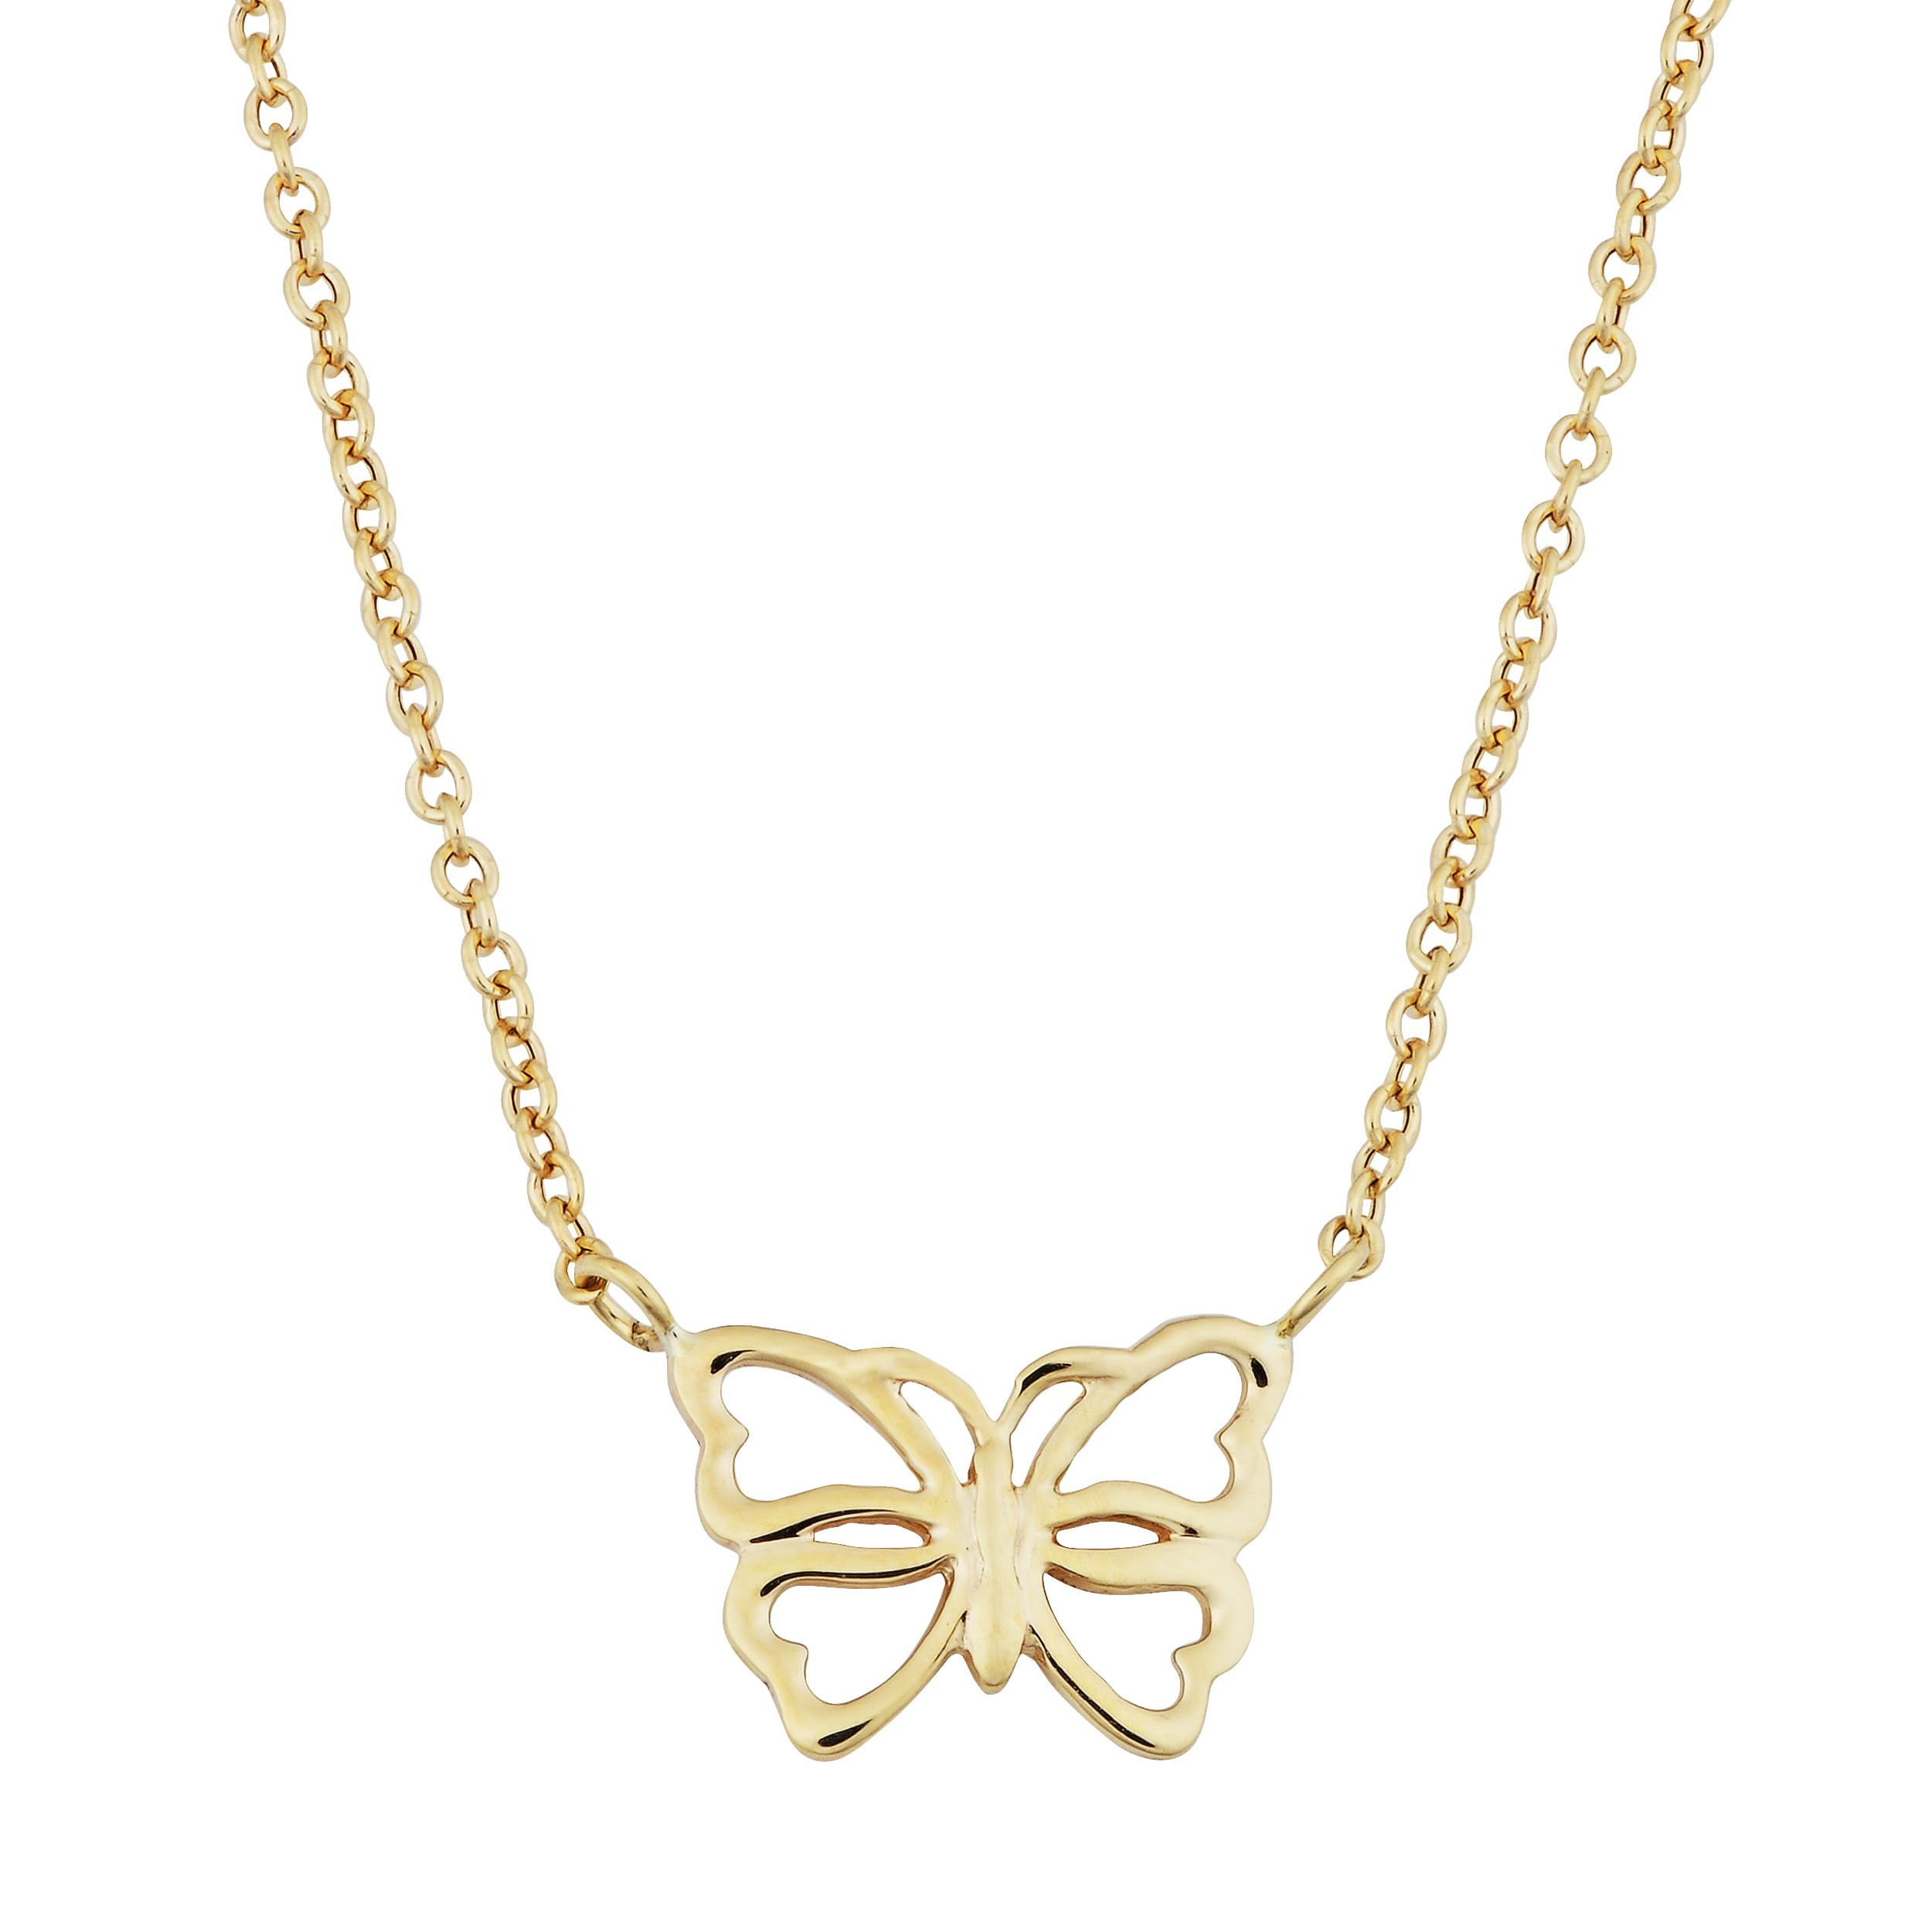 14k Yellow Gold Butterfly Adjustable Length Necklace (fits 17'' or 18'')